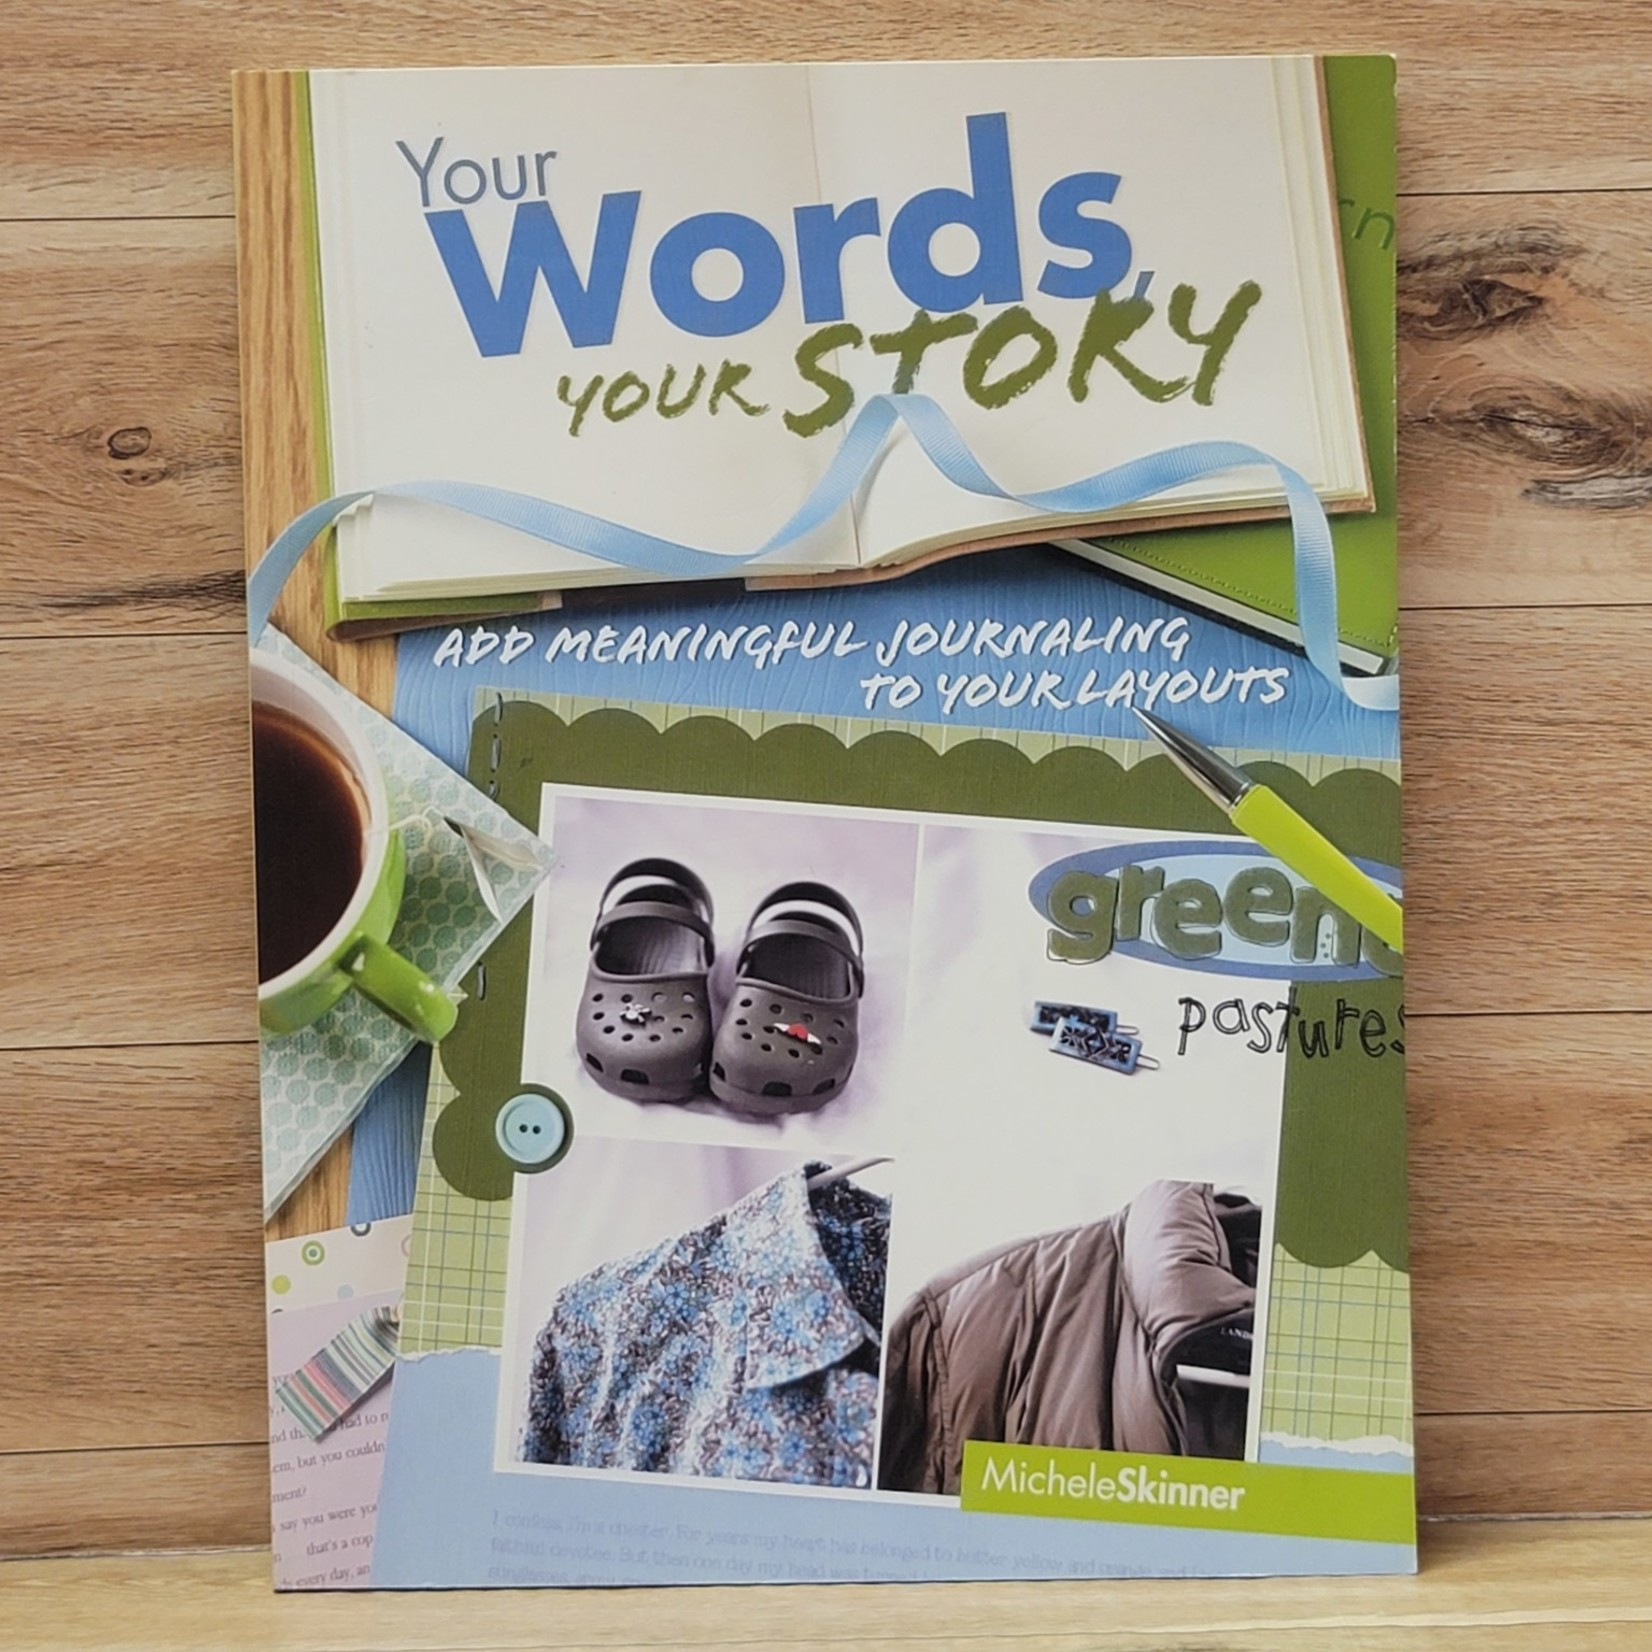 Your Words Your Story